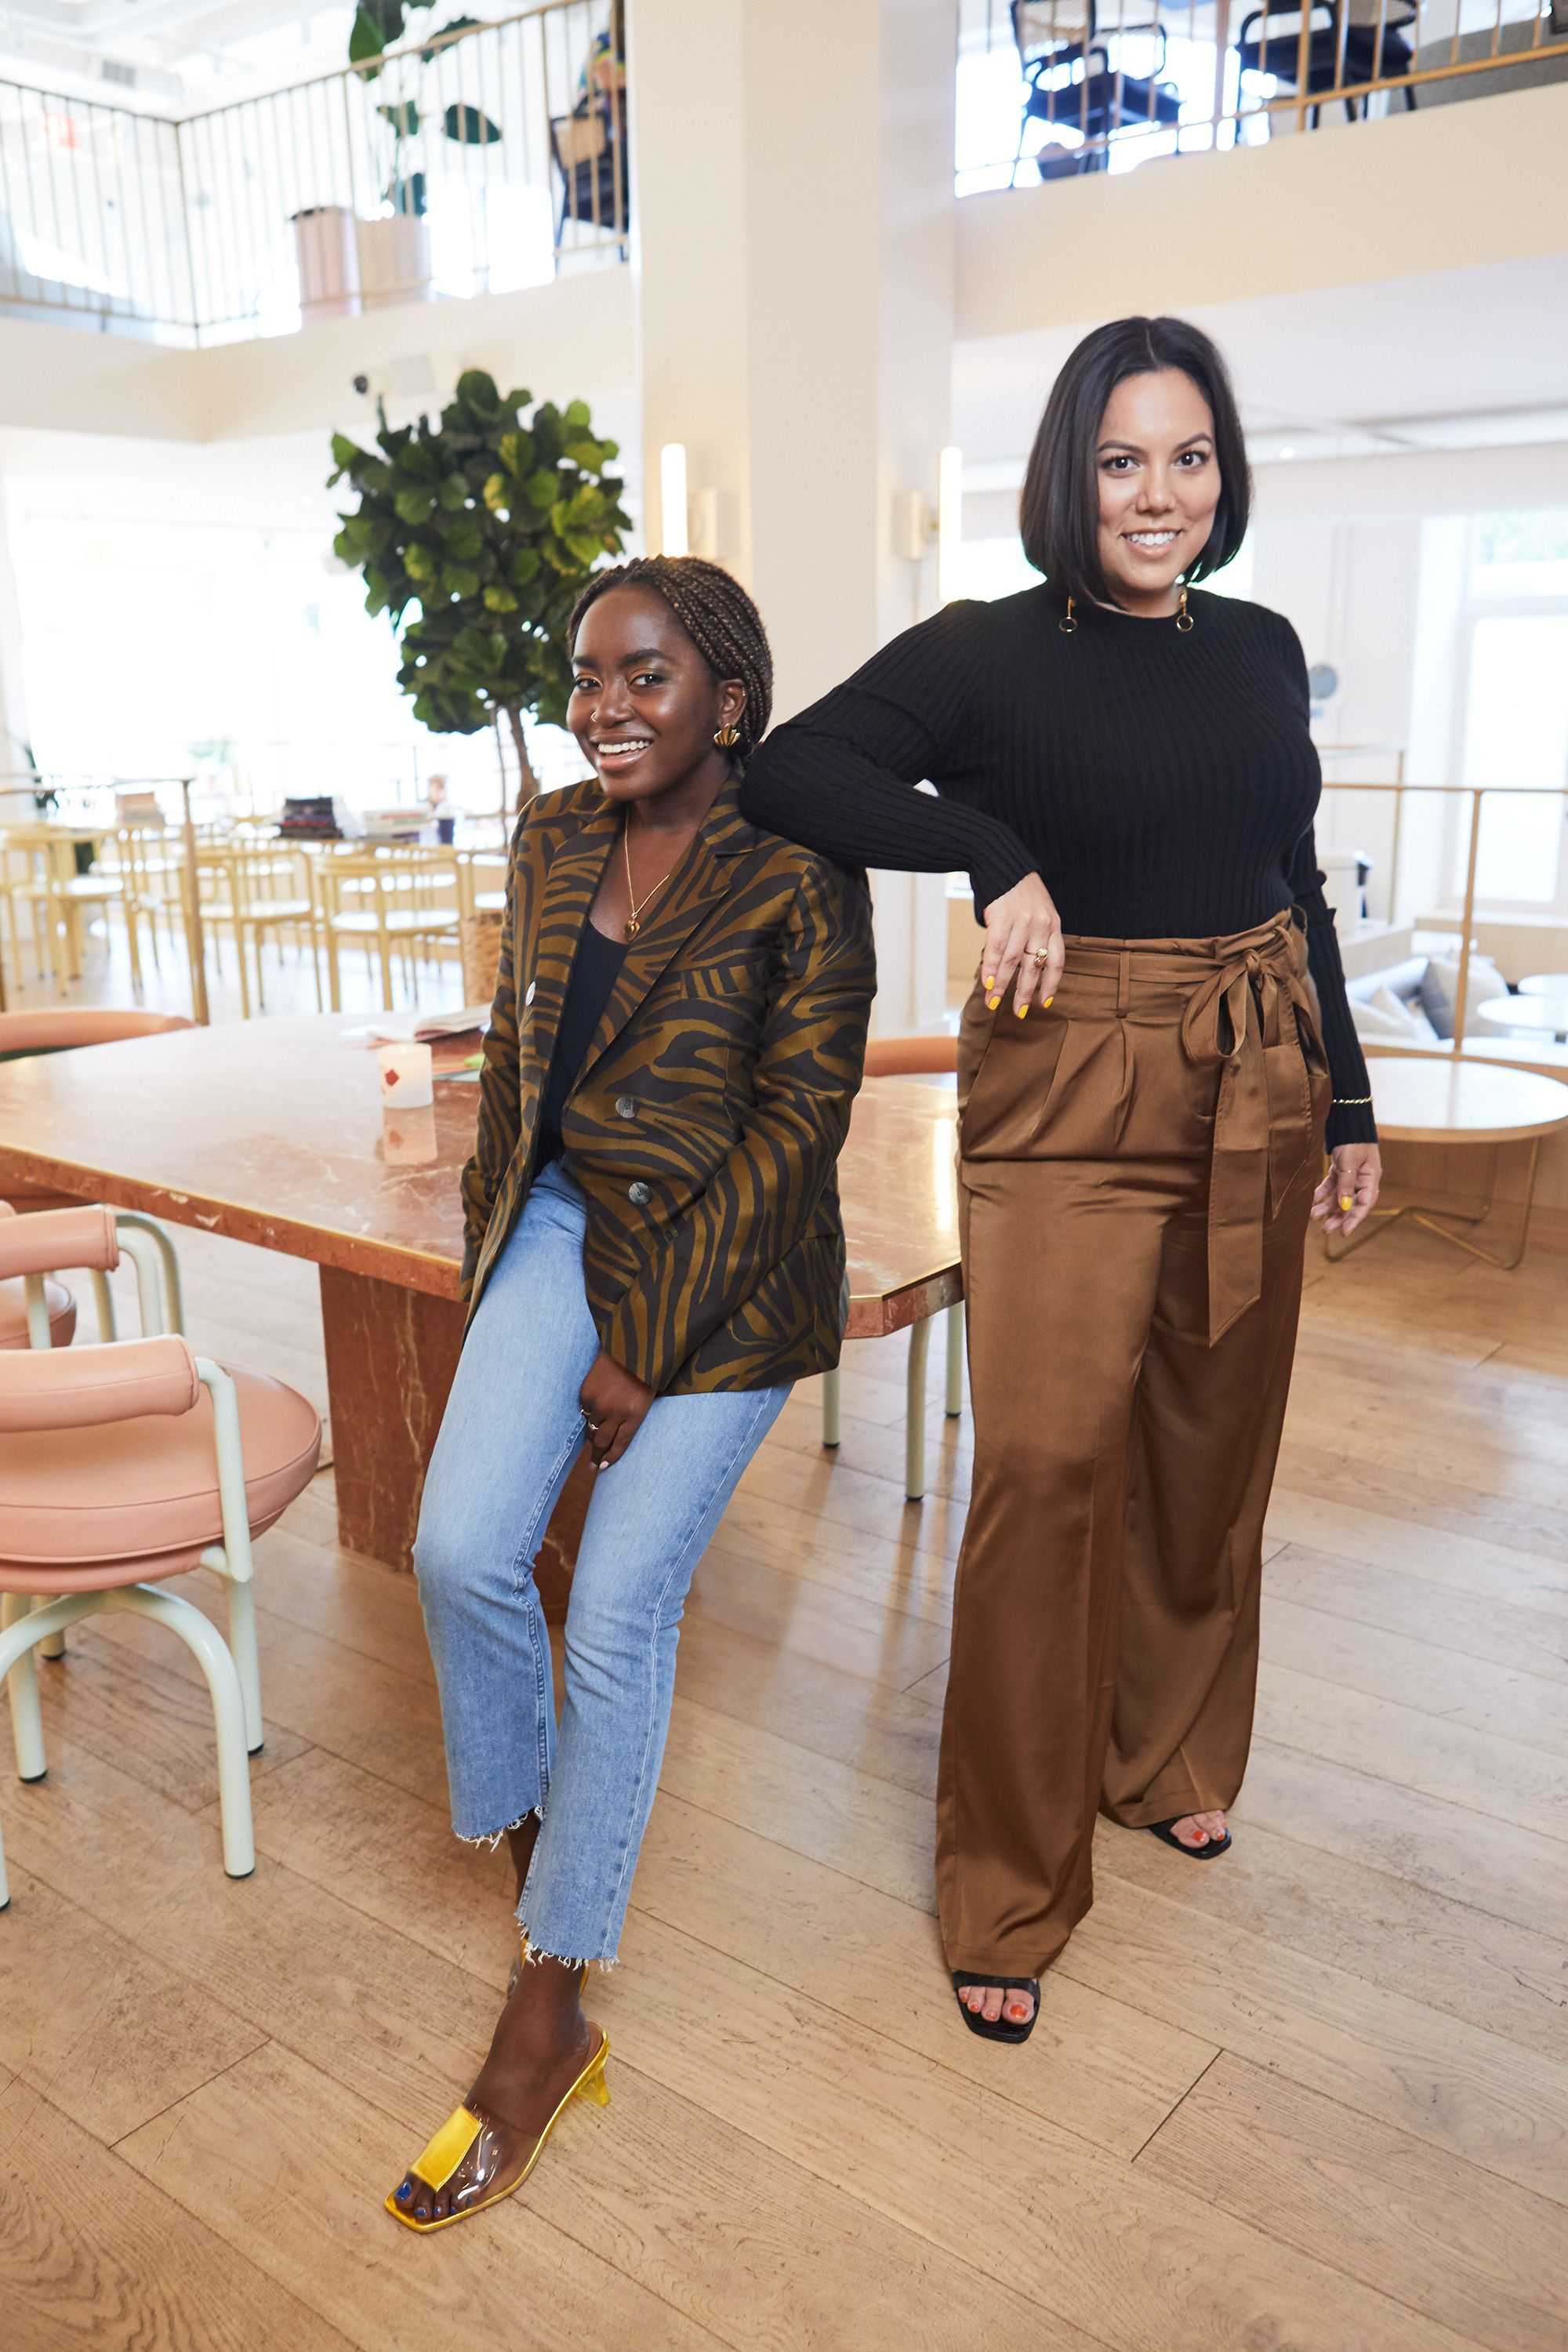 3 Hard Lessons These Female Founders Learned About Rebranding Their Company